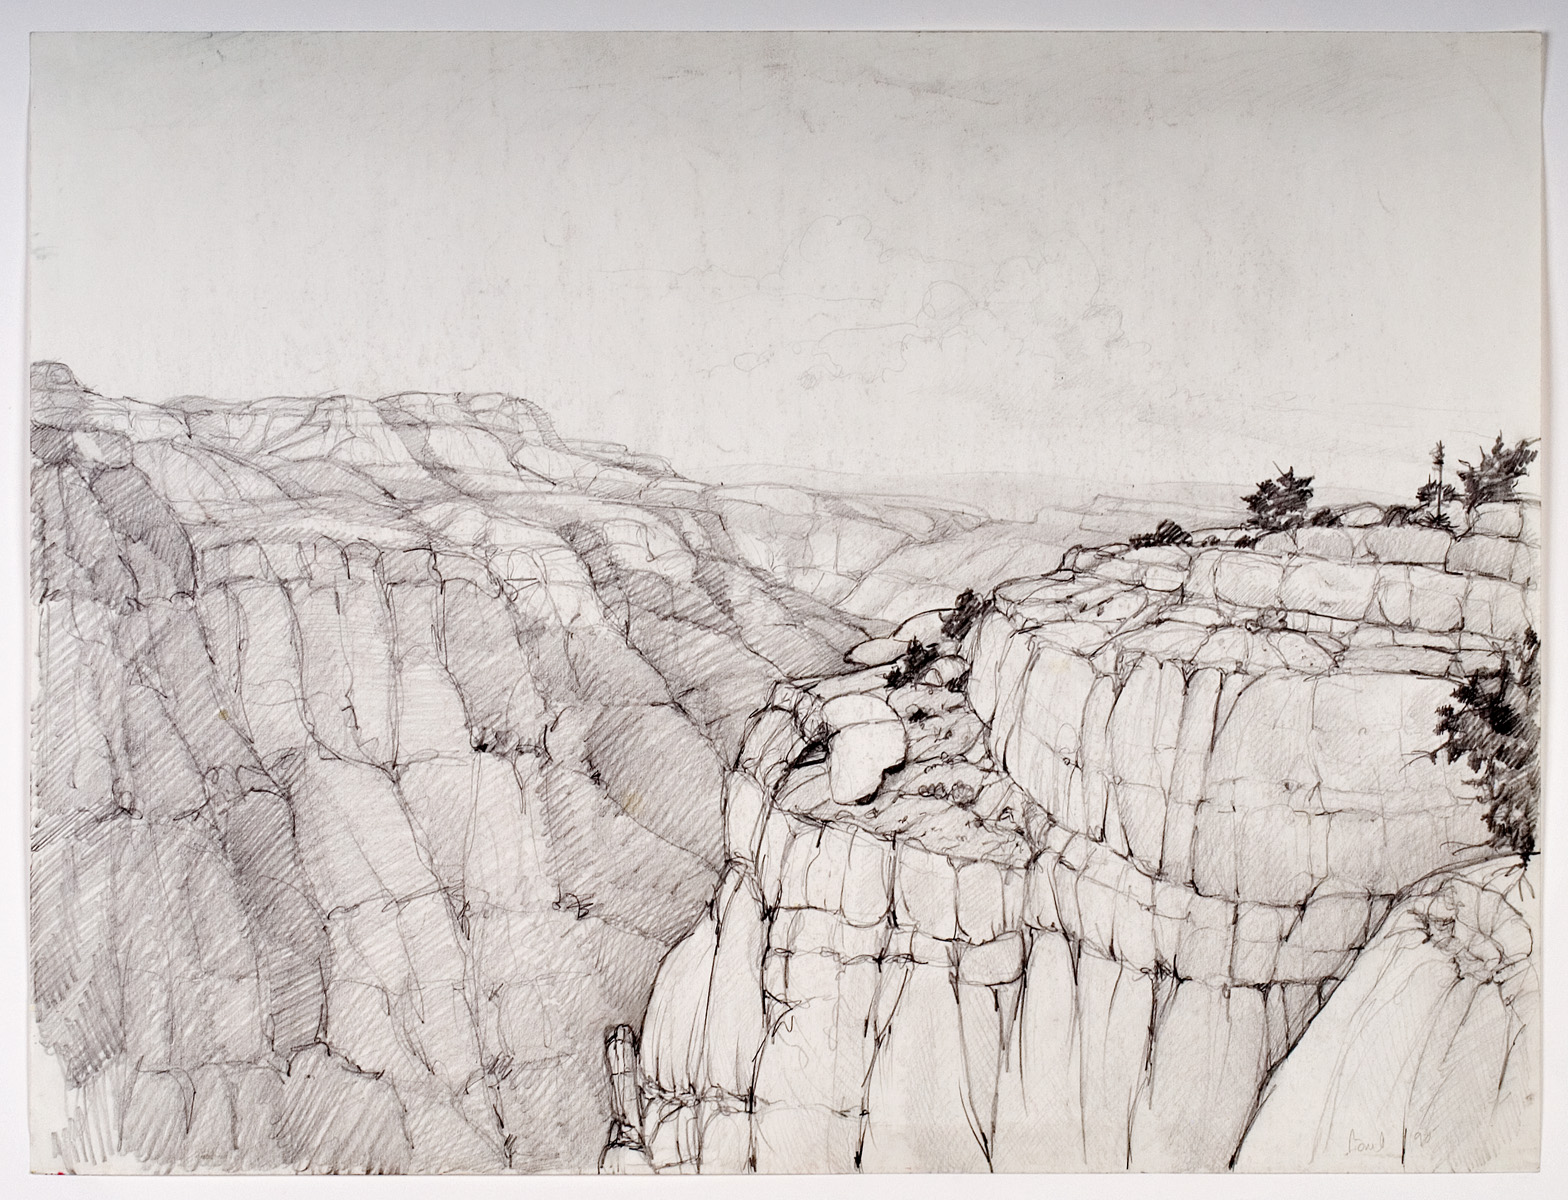 West From Toroweap, pencil -  1980